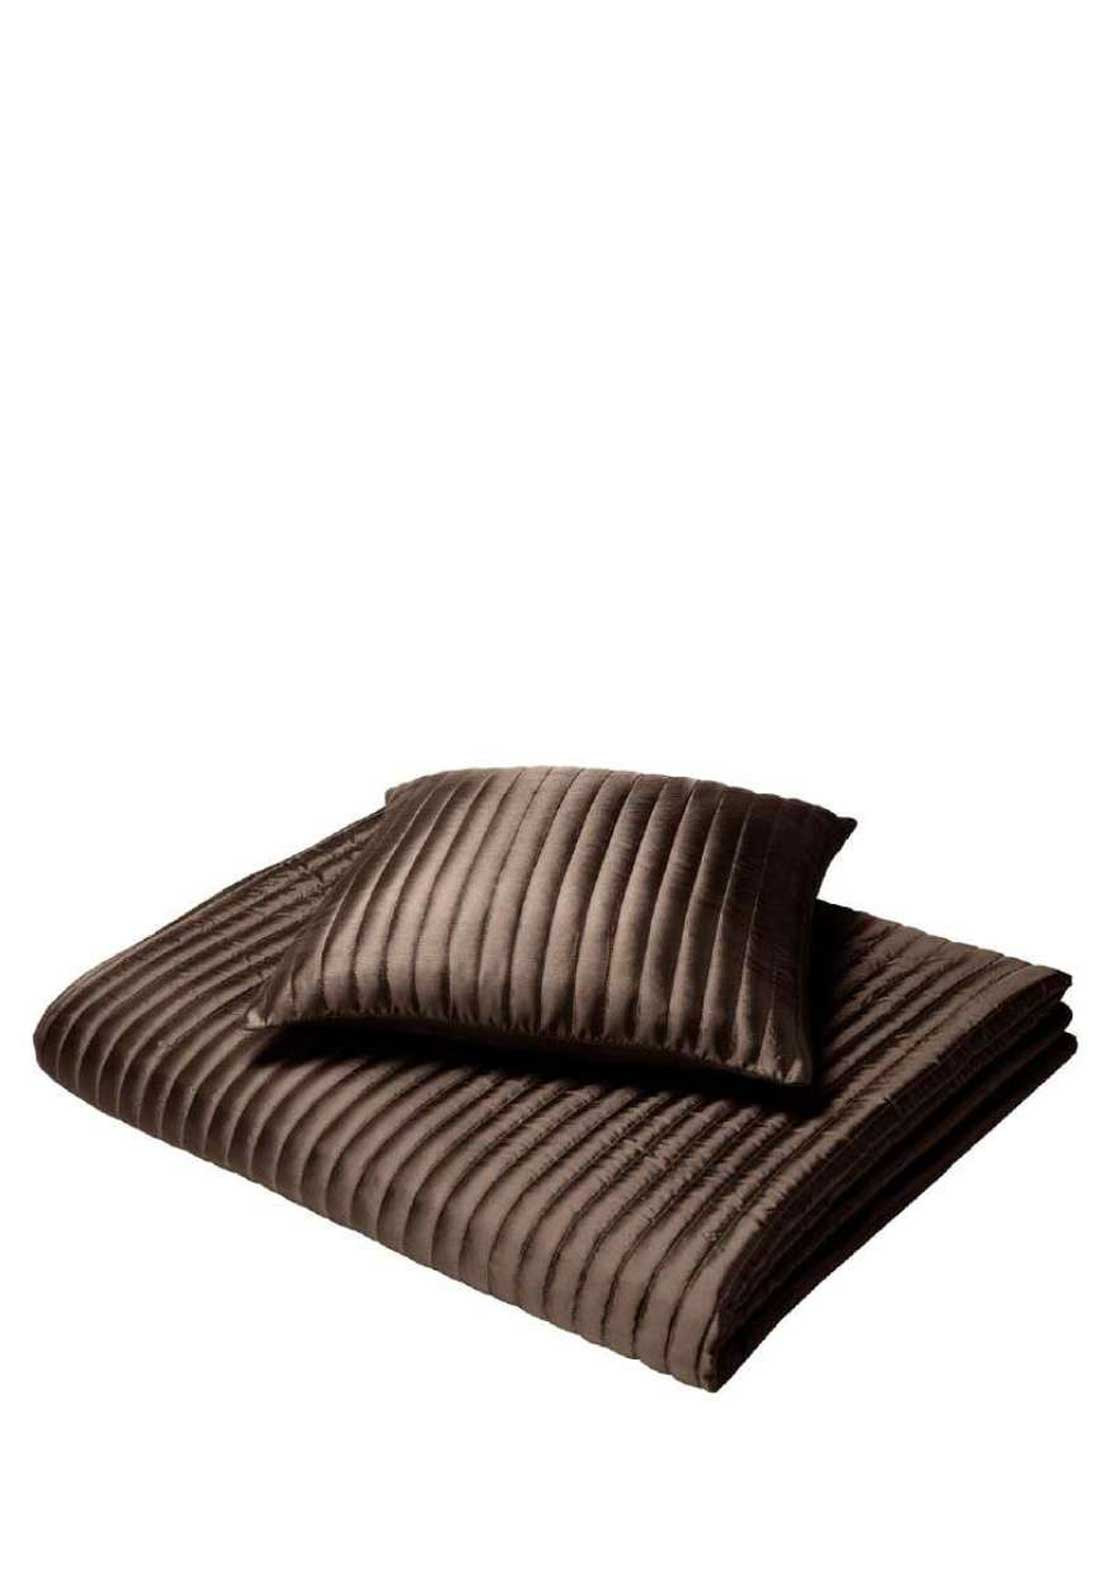 Catherine Lansfield Home Taffeta Bed Runner, Chocolate